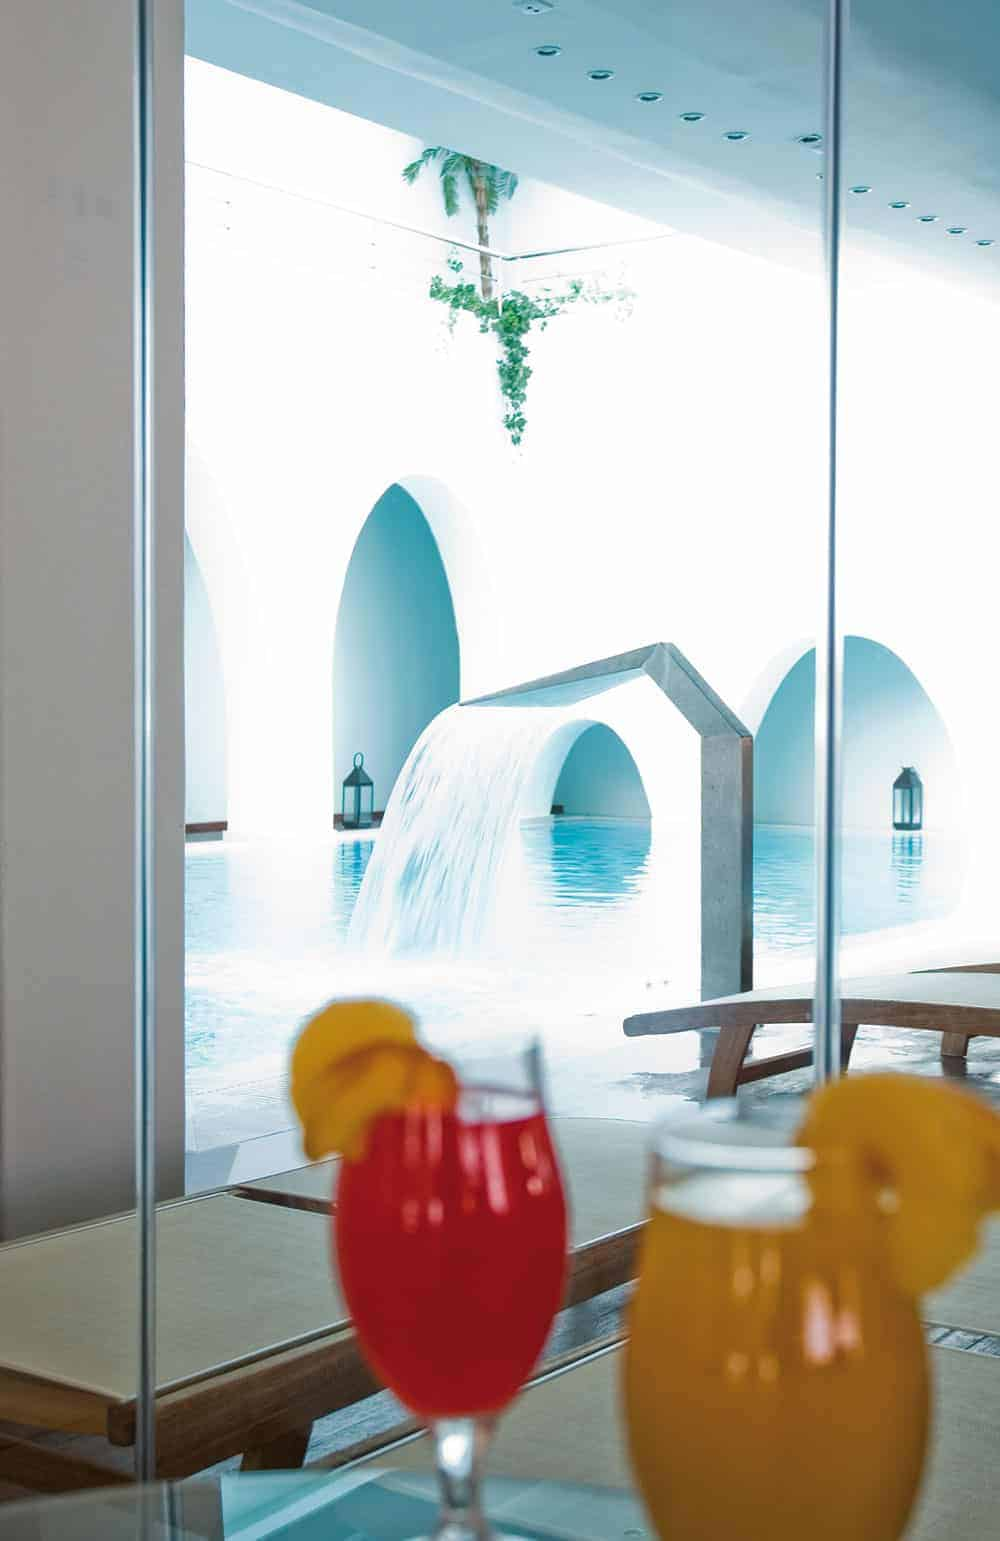 Fruit-Juices-&- Spa Pool at Freshbar